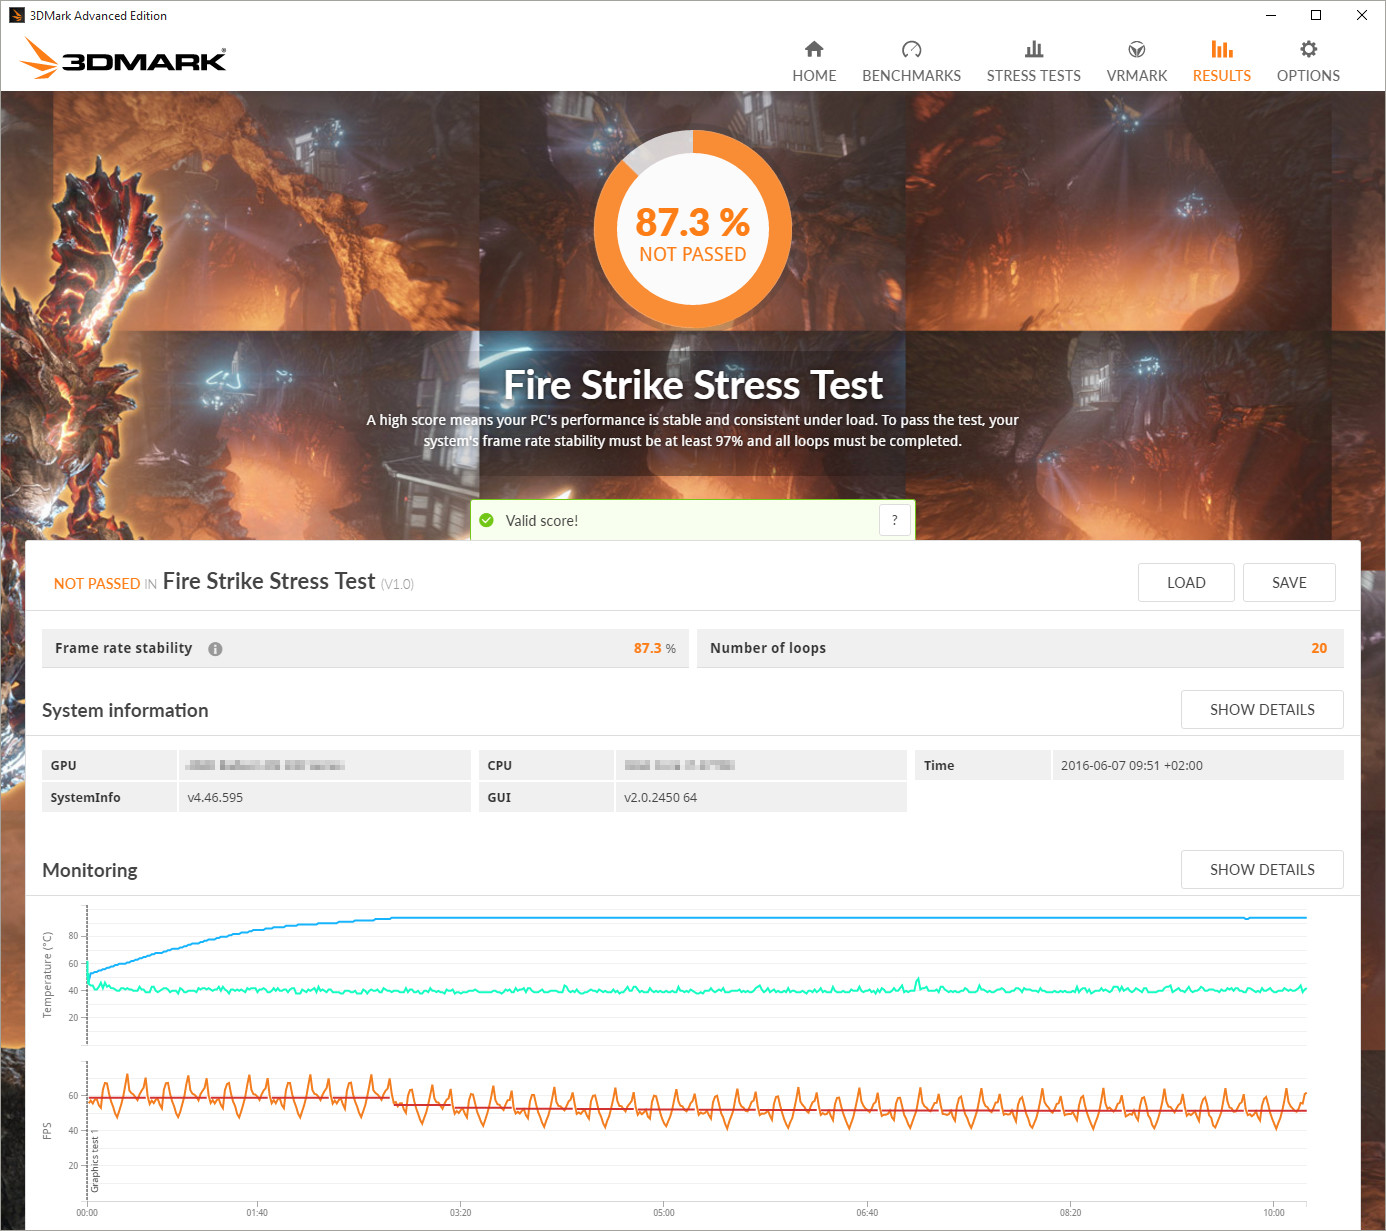 Futuremark Introduces 3DMARK Stress Tests